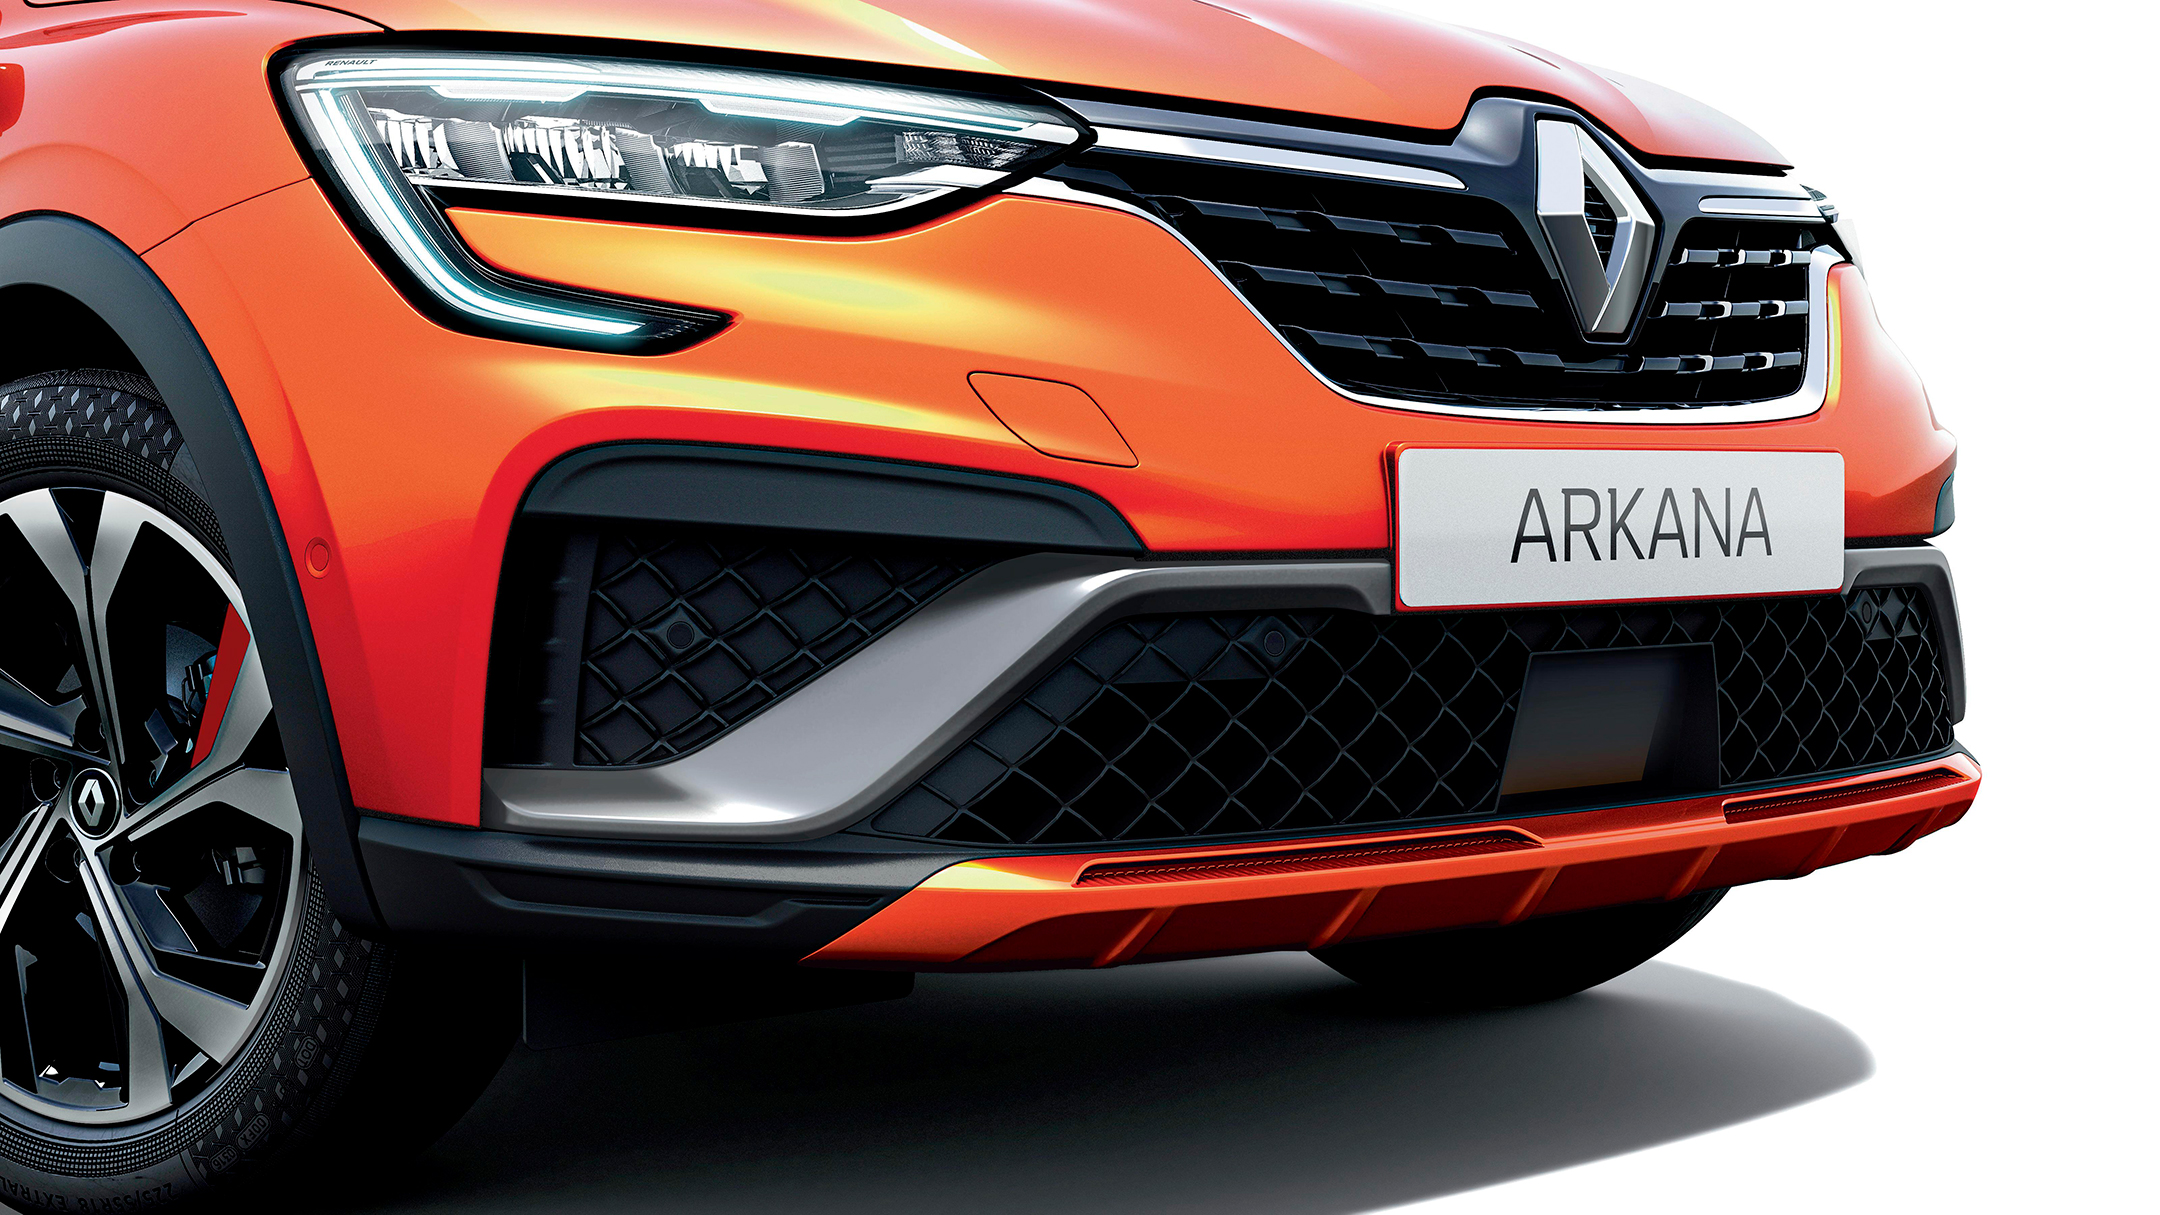 Renault Arkana R.S. Line E-TECH Hybrid - 2020 - front-grill diamond shape / calandre emblème losange - front light / optique avant - (C-shape)